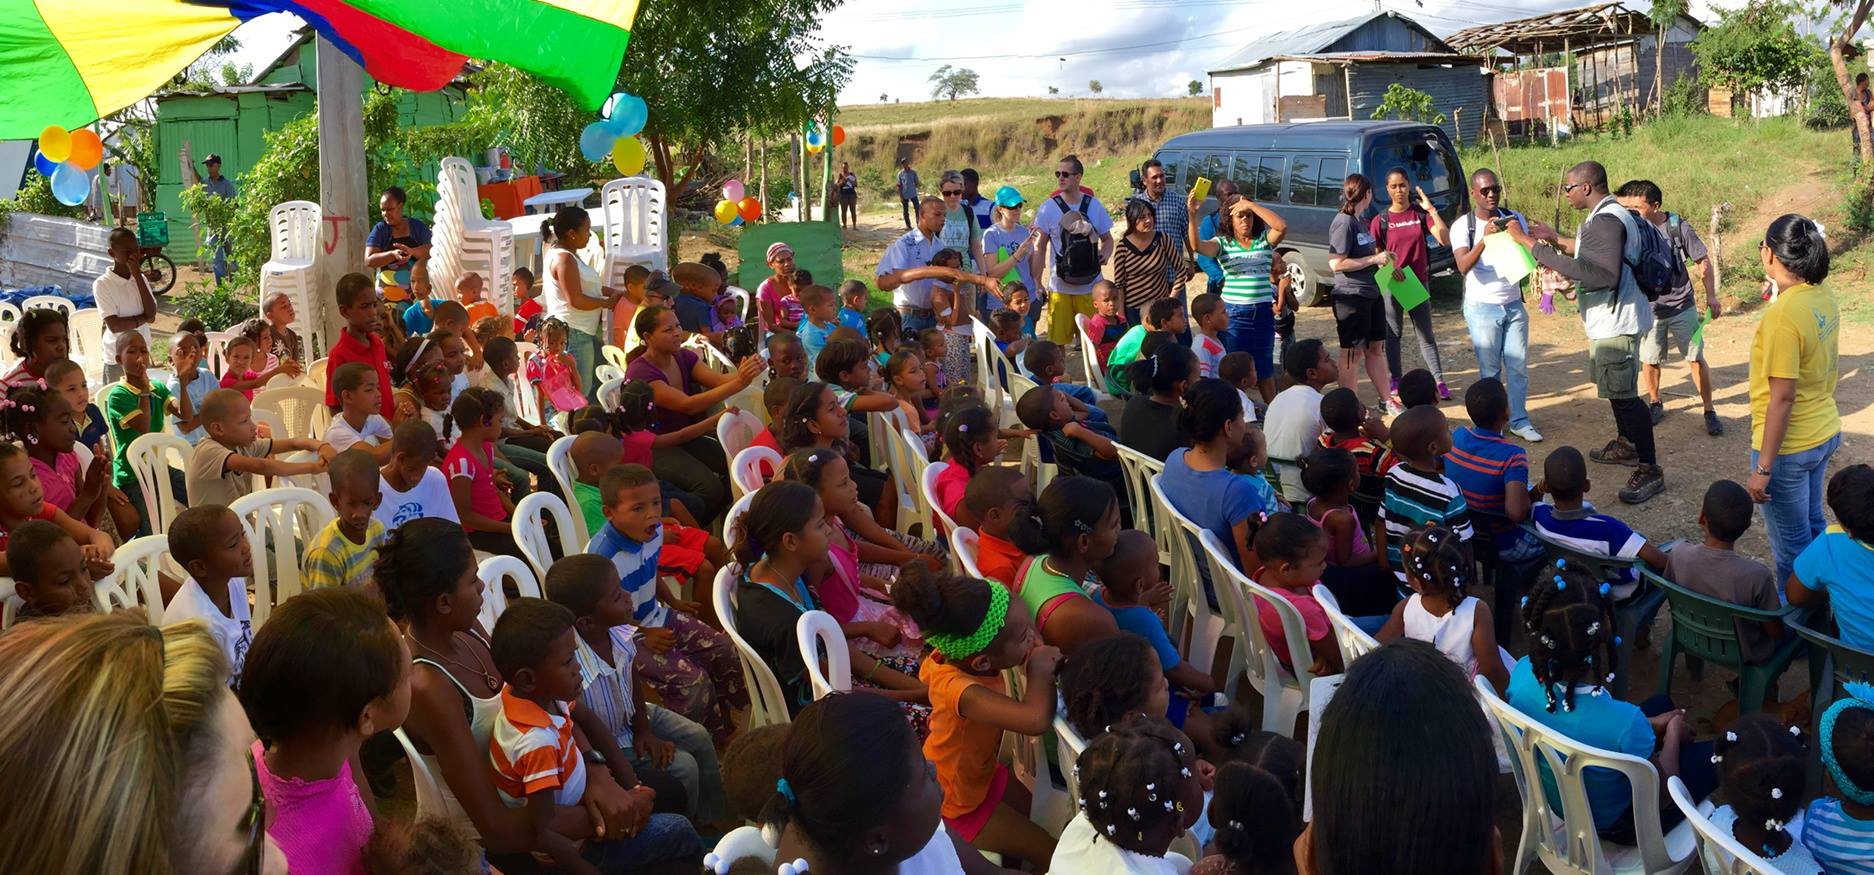 2015 Dominican Republic DR pic